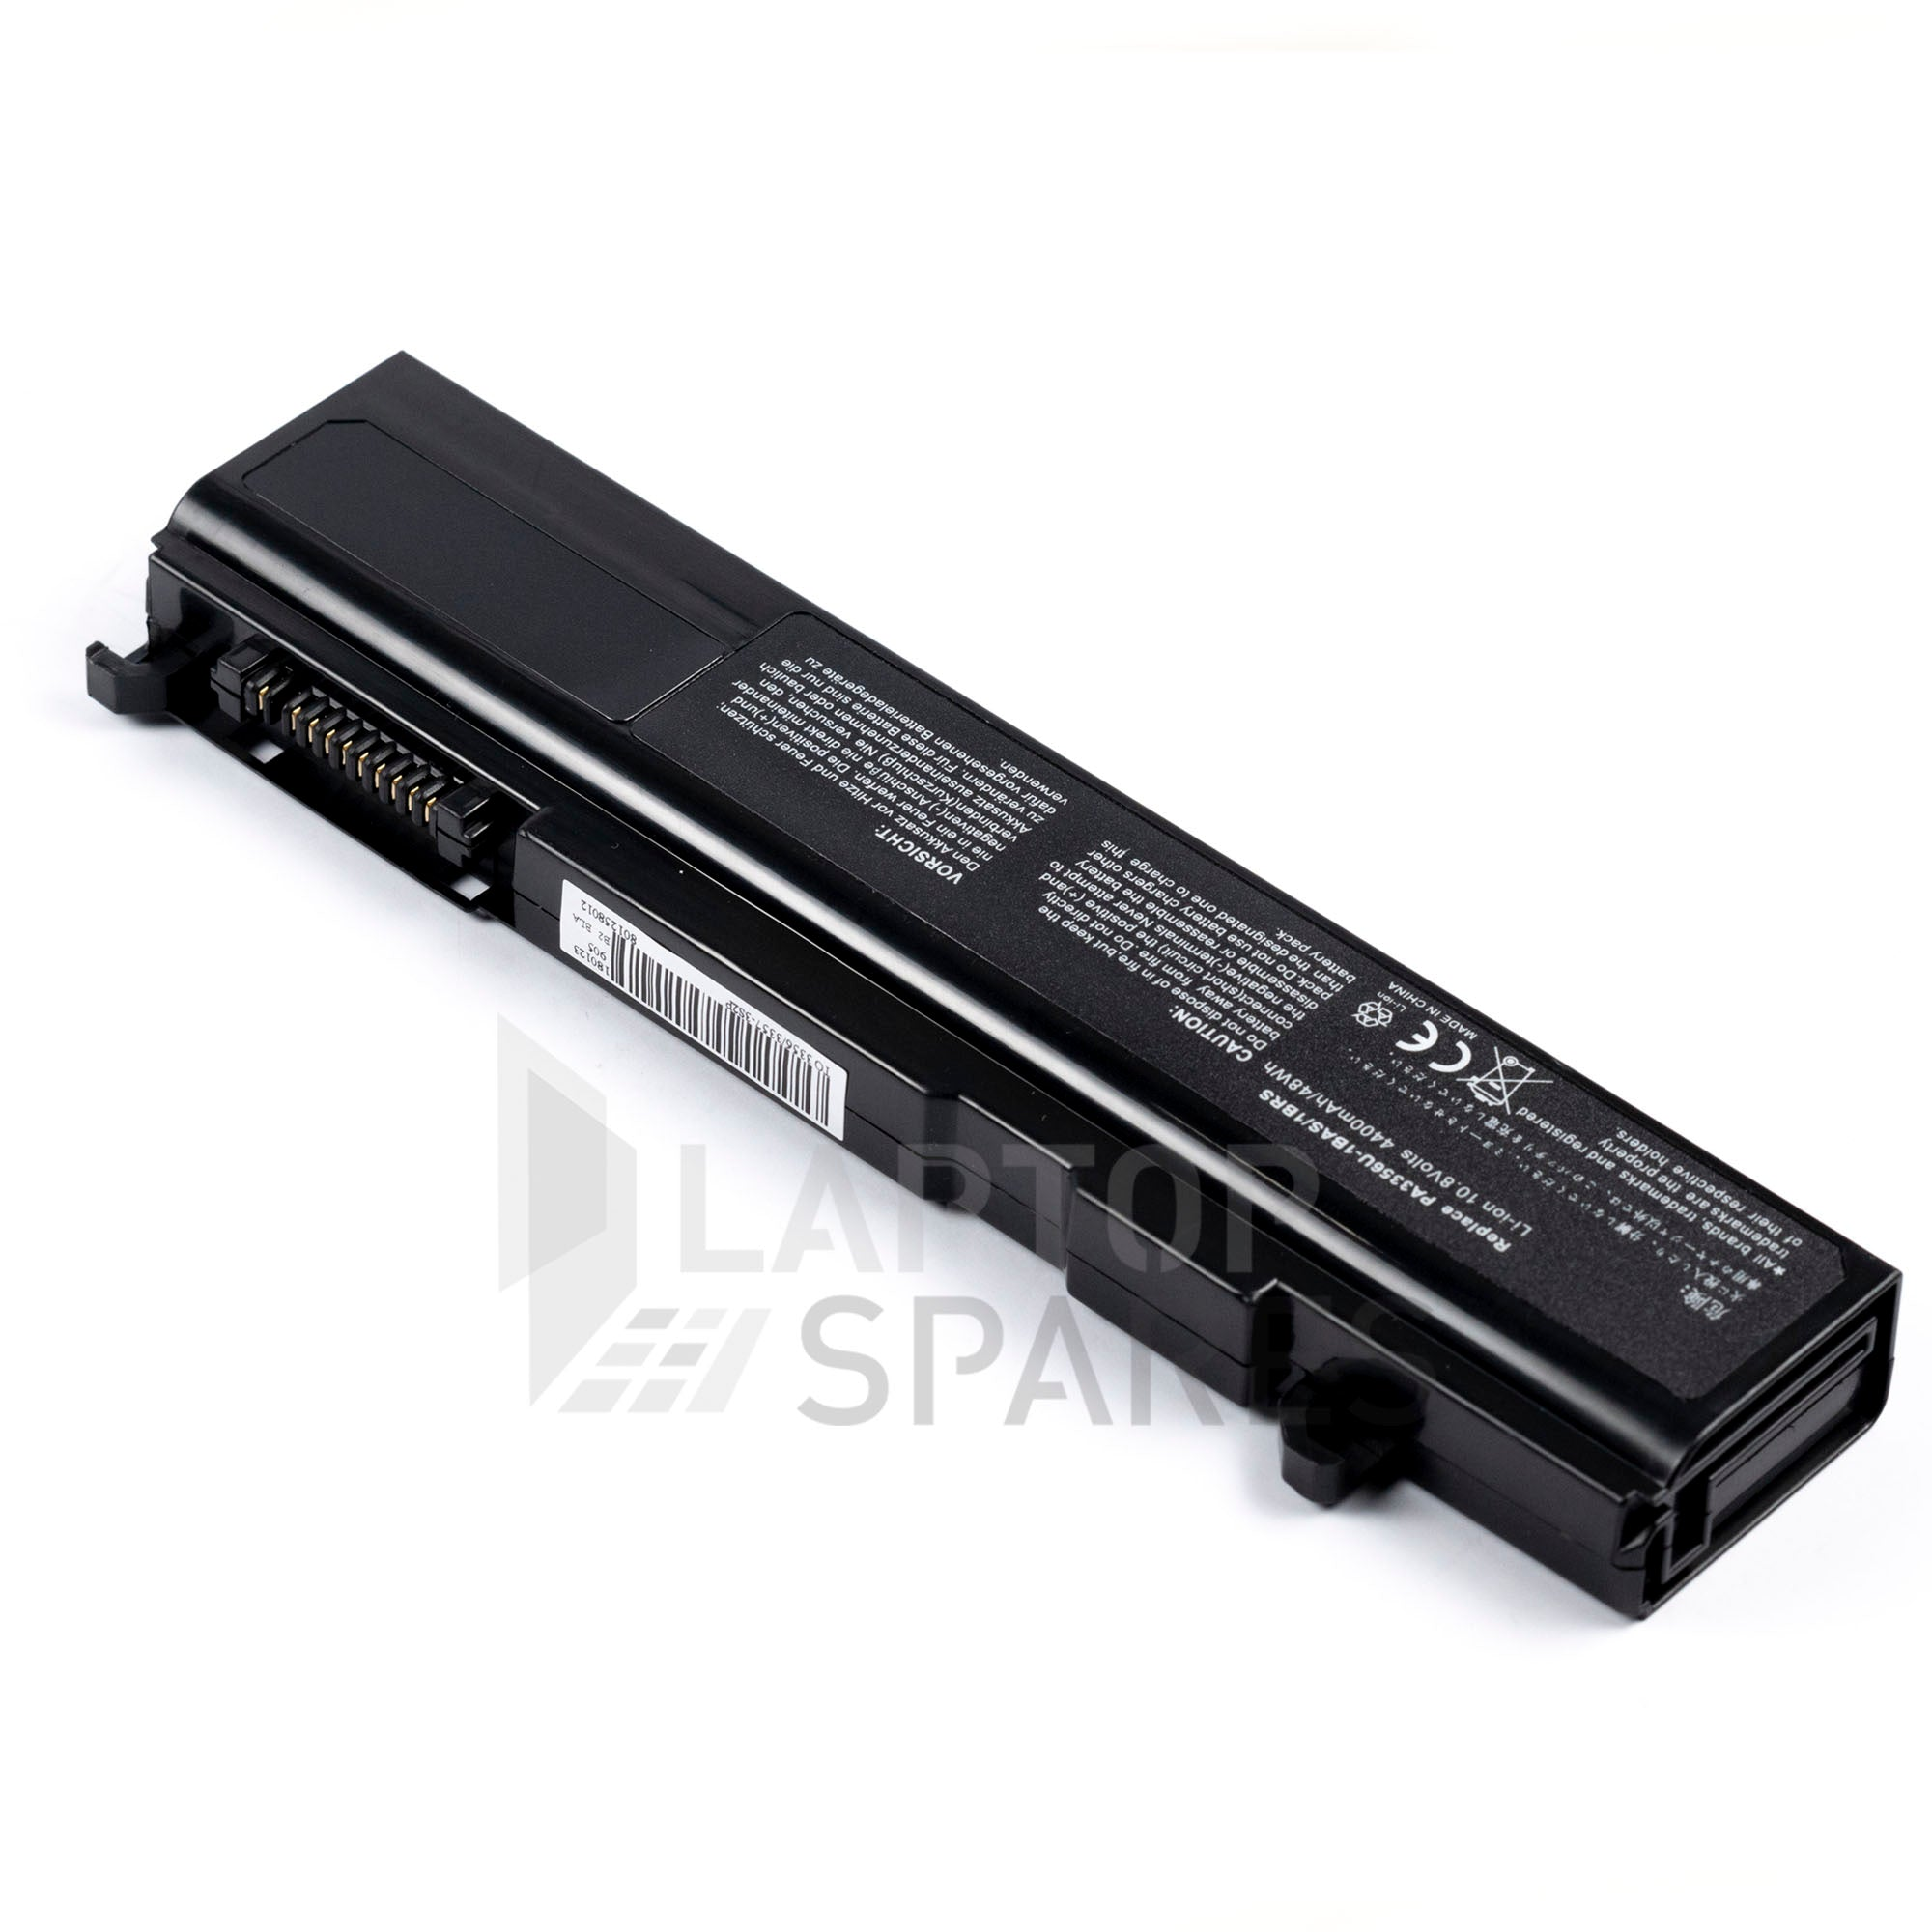 Toshiba Tecra A9 50Q 50X 51B 51E 4400mAh 6 Cell Battery